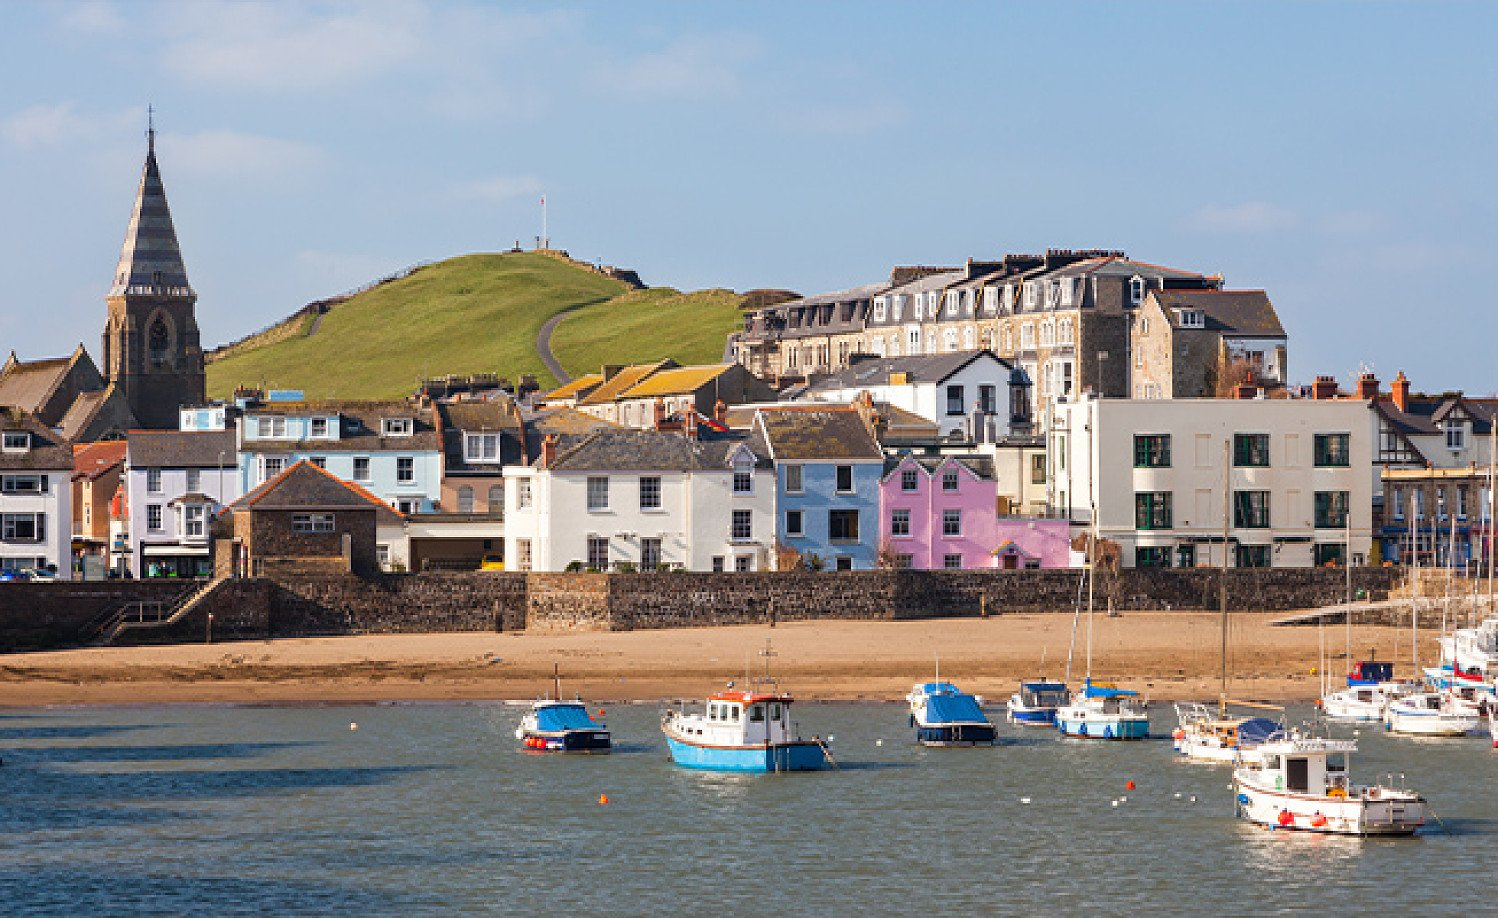 North Devon & Exploring the Exmoor National Park - 5 Days from just £289pp!